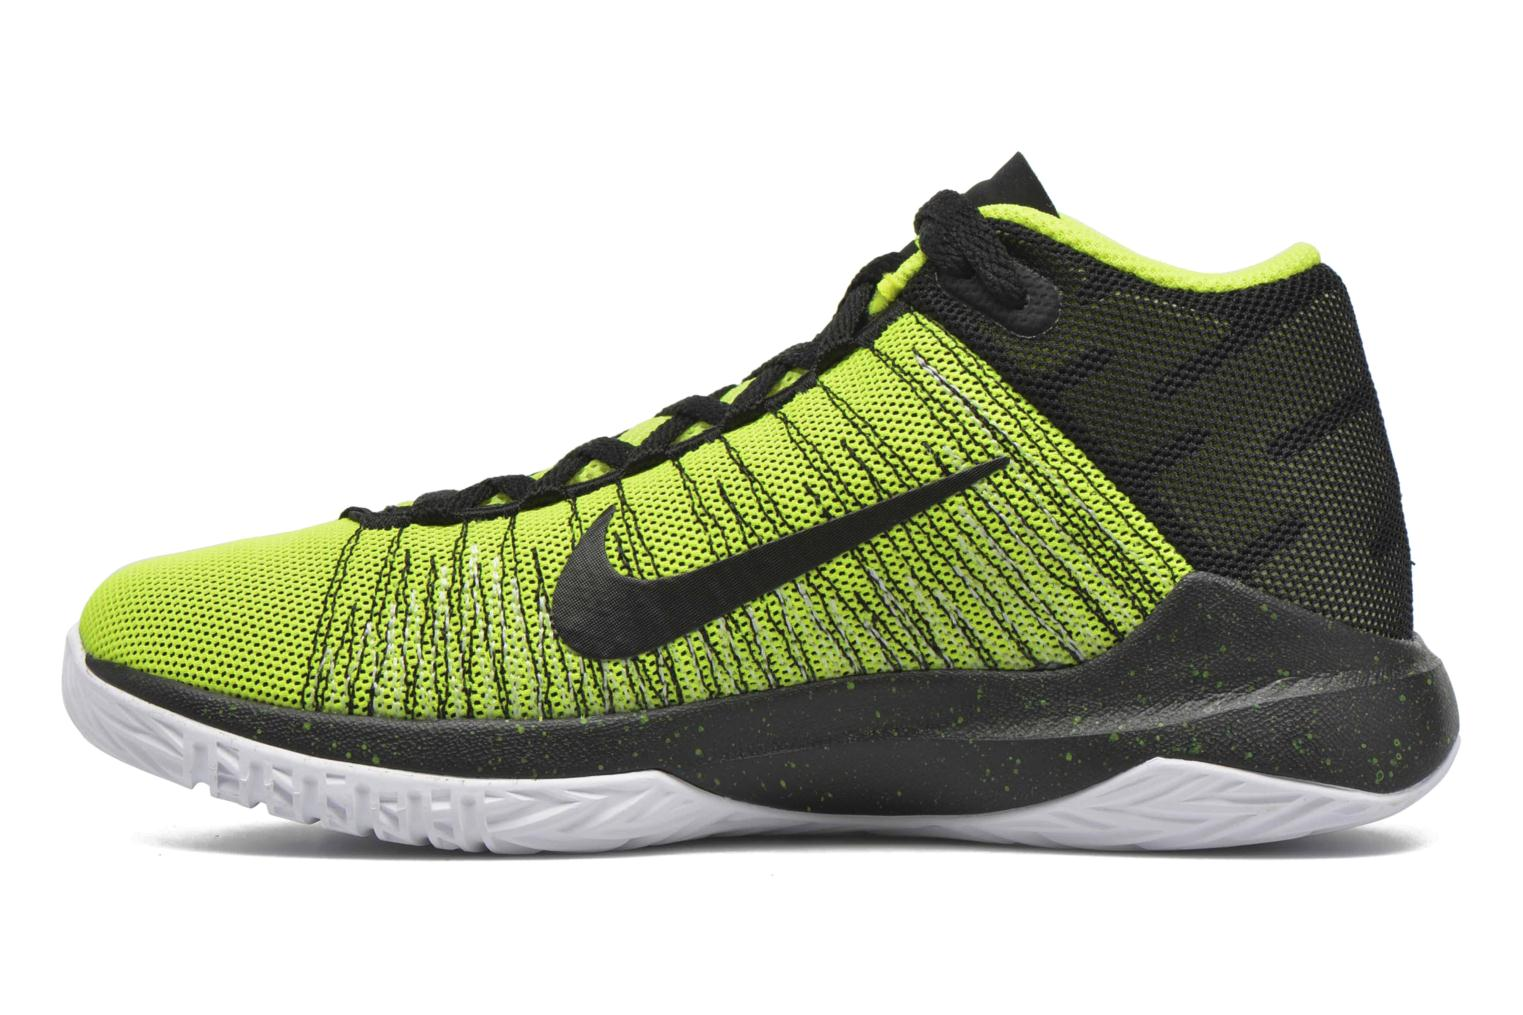 Nike Zoom Ascention (Gs) Volt Black-White